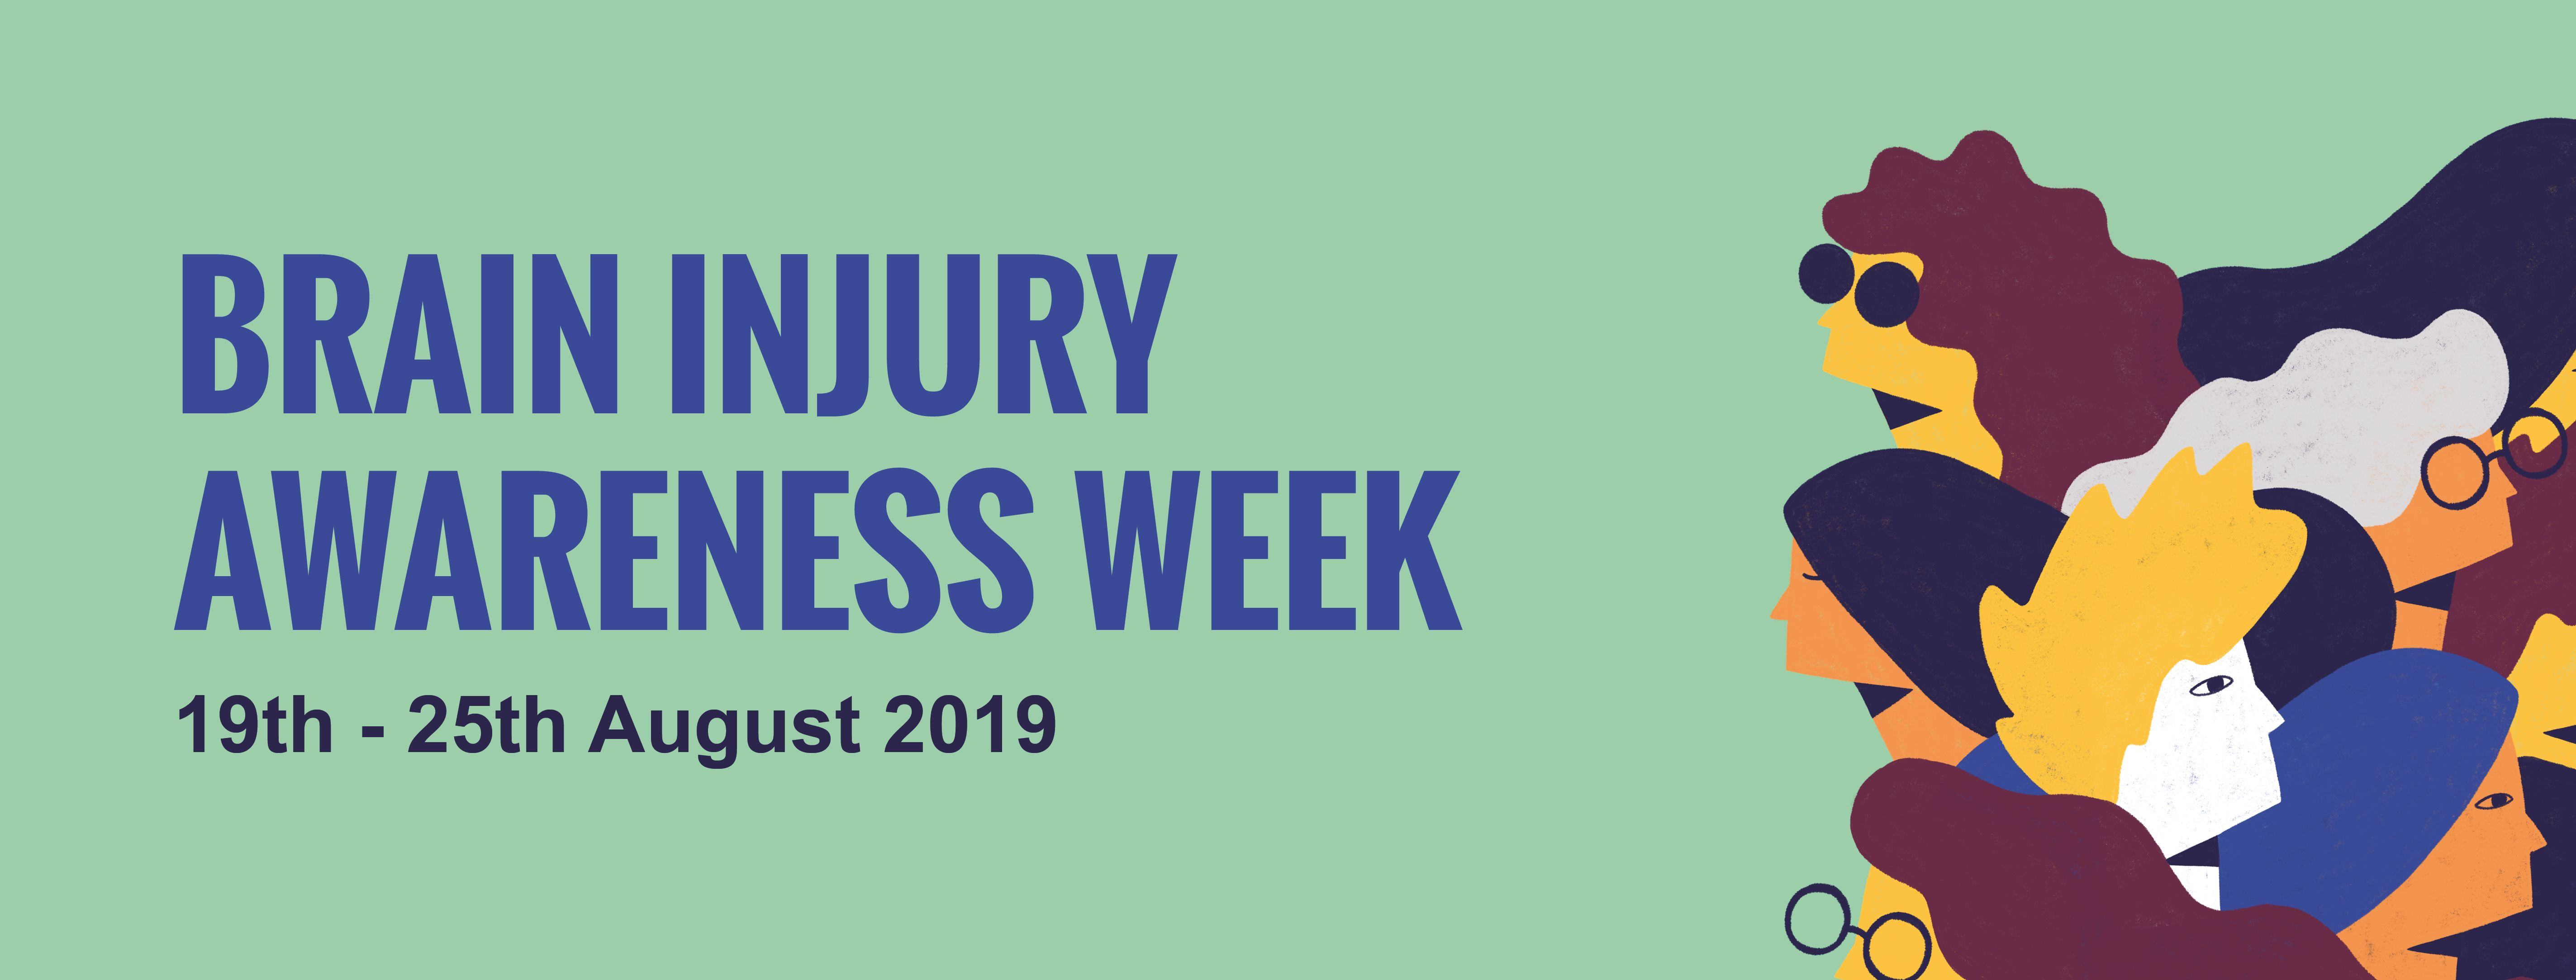 Brain Injury Awareness Week 19th to 25th August 2019